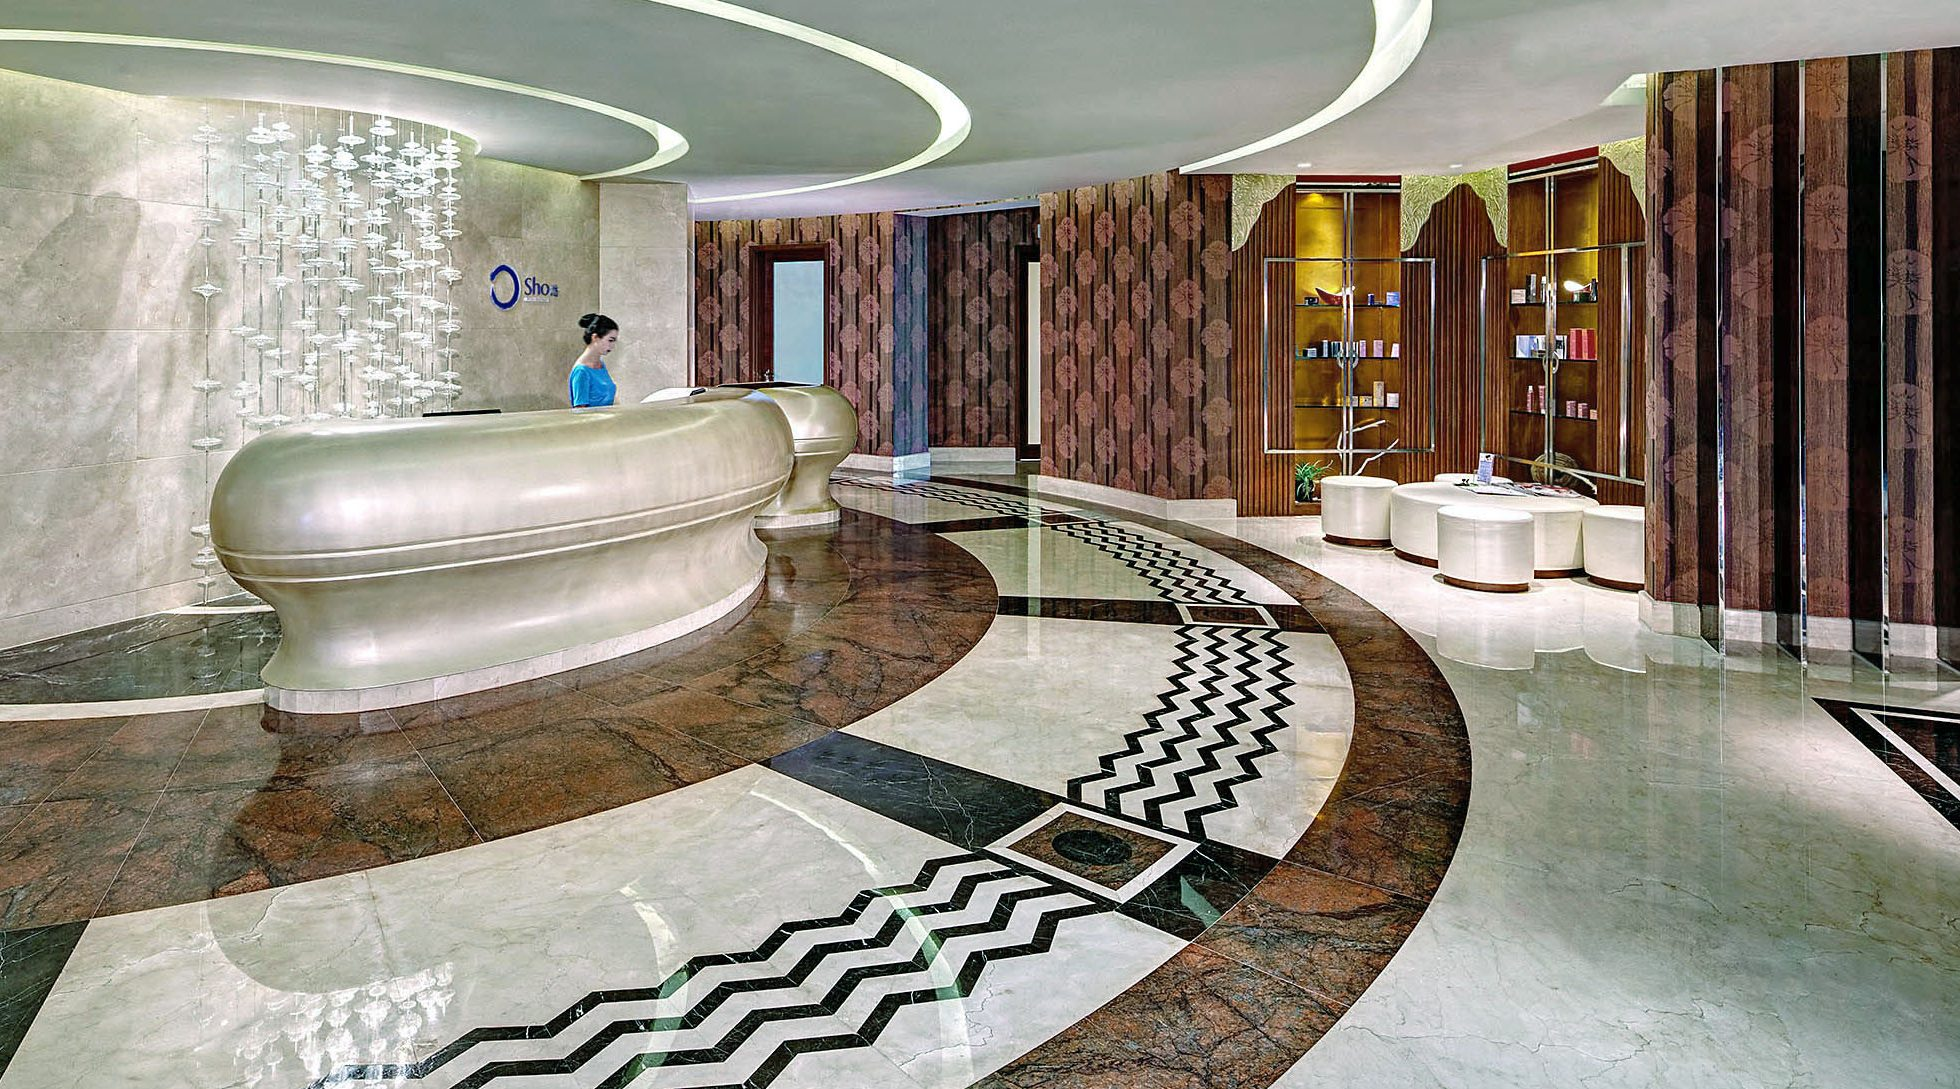 Paul Dingman photographs hotels and resorts in China and Asia